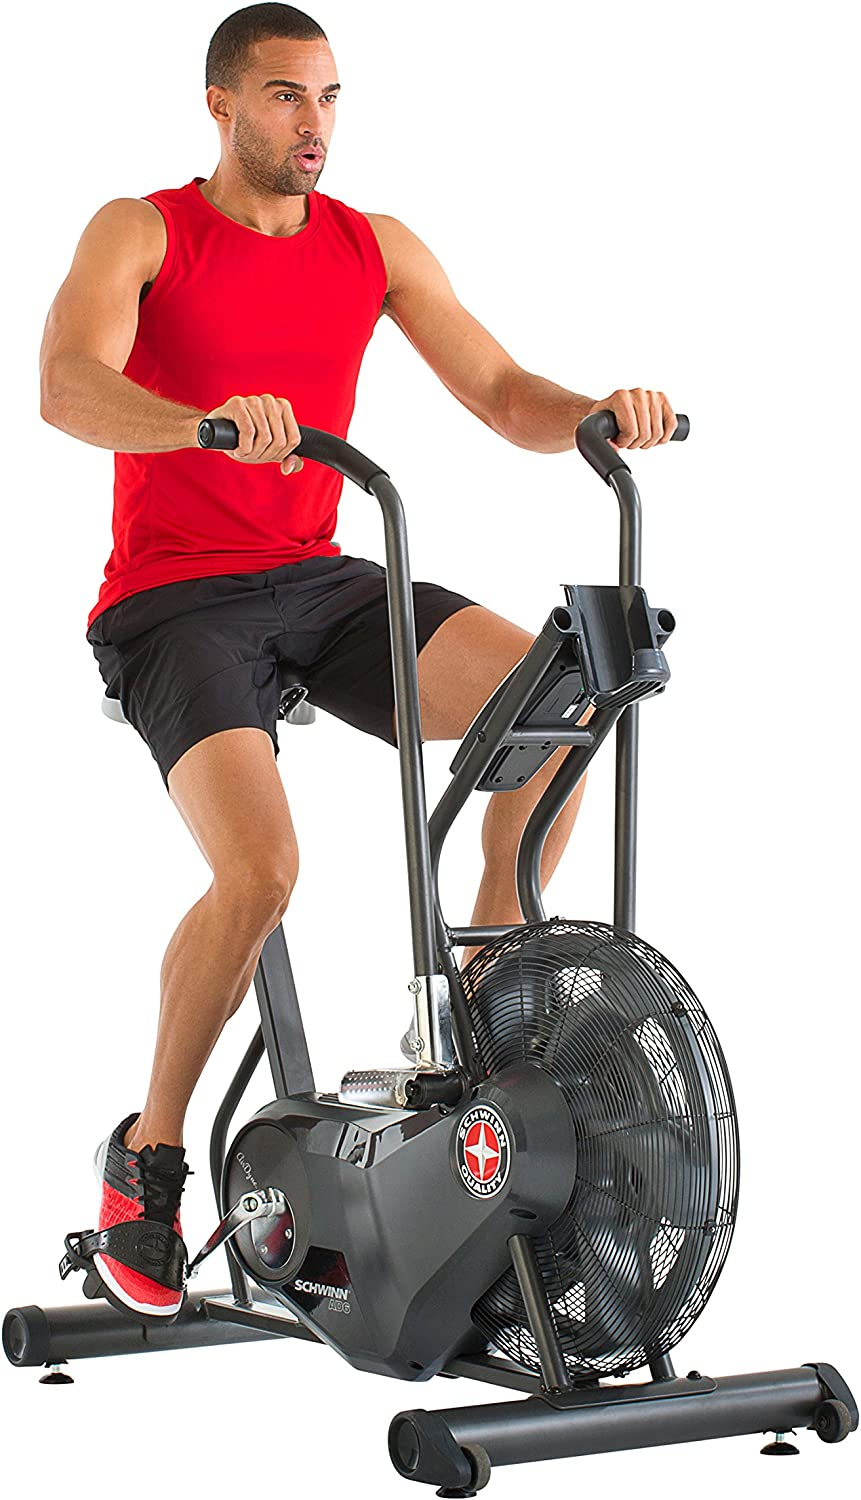 best exercise bike to lose weight: Schwinn Airdyne Bike Series